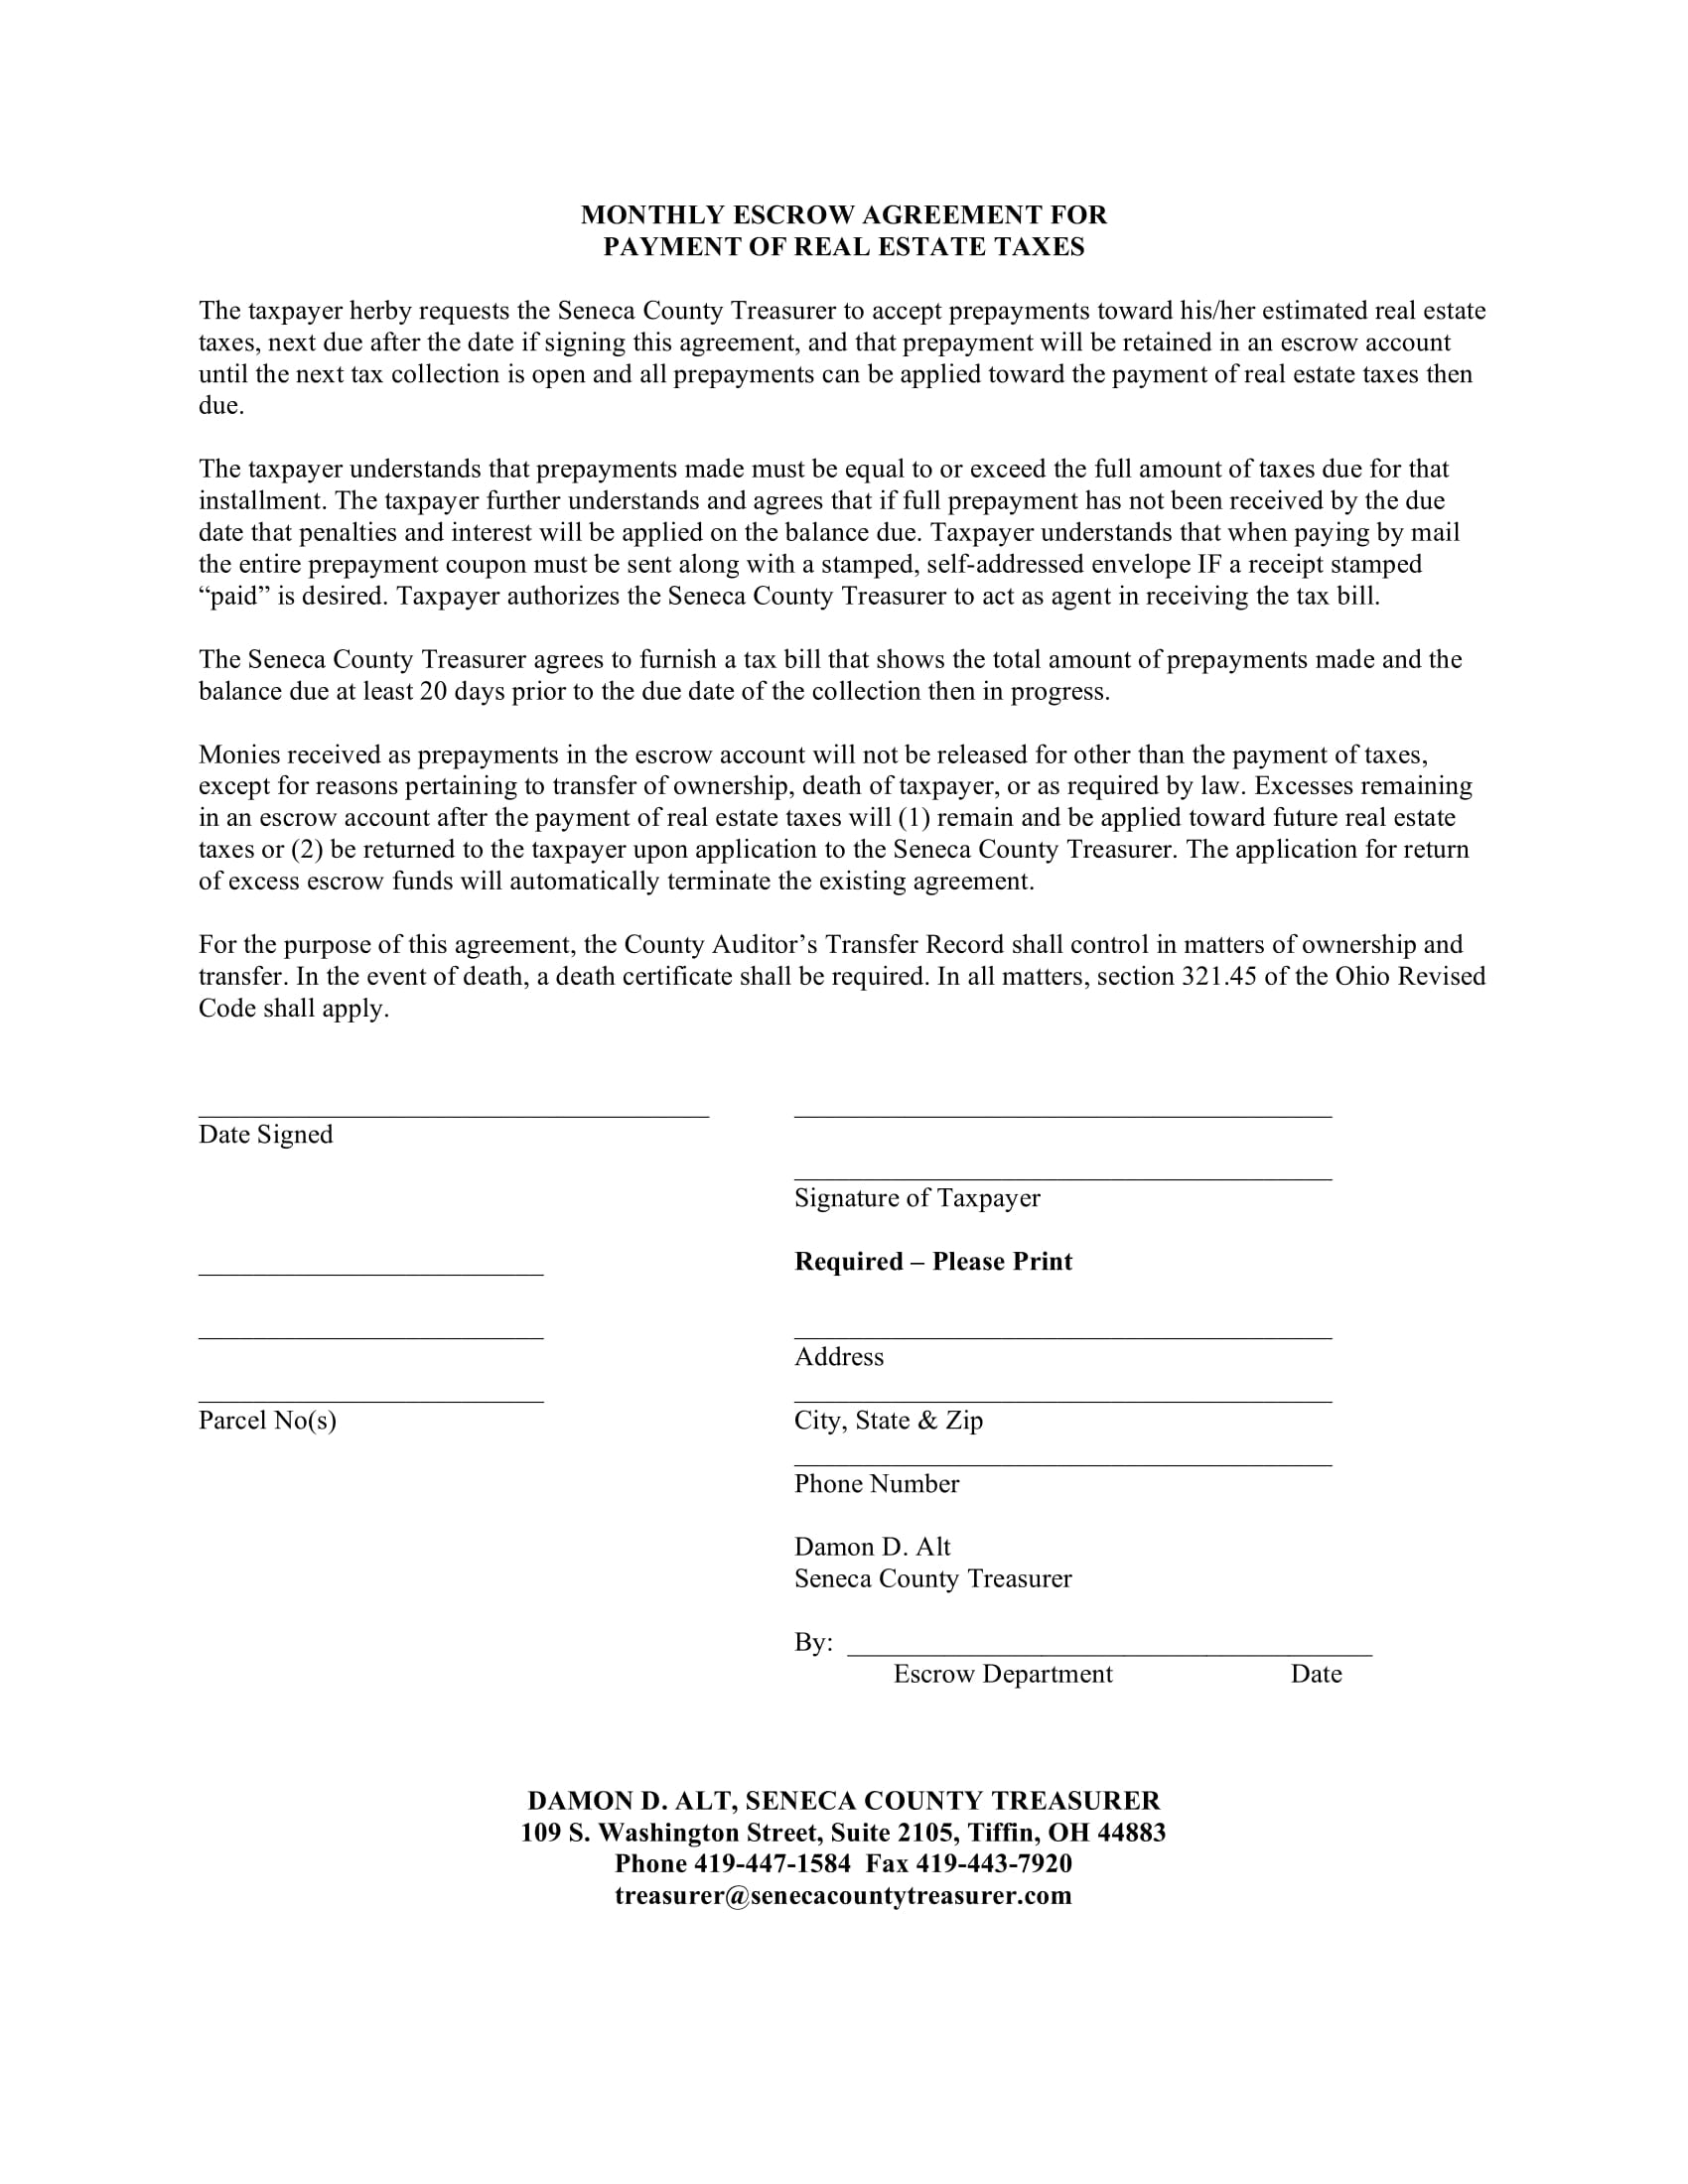 real estate escrow agreement form 2